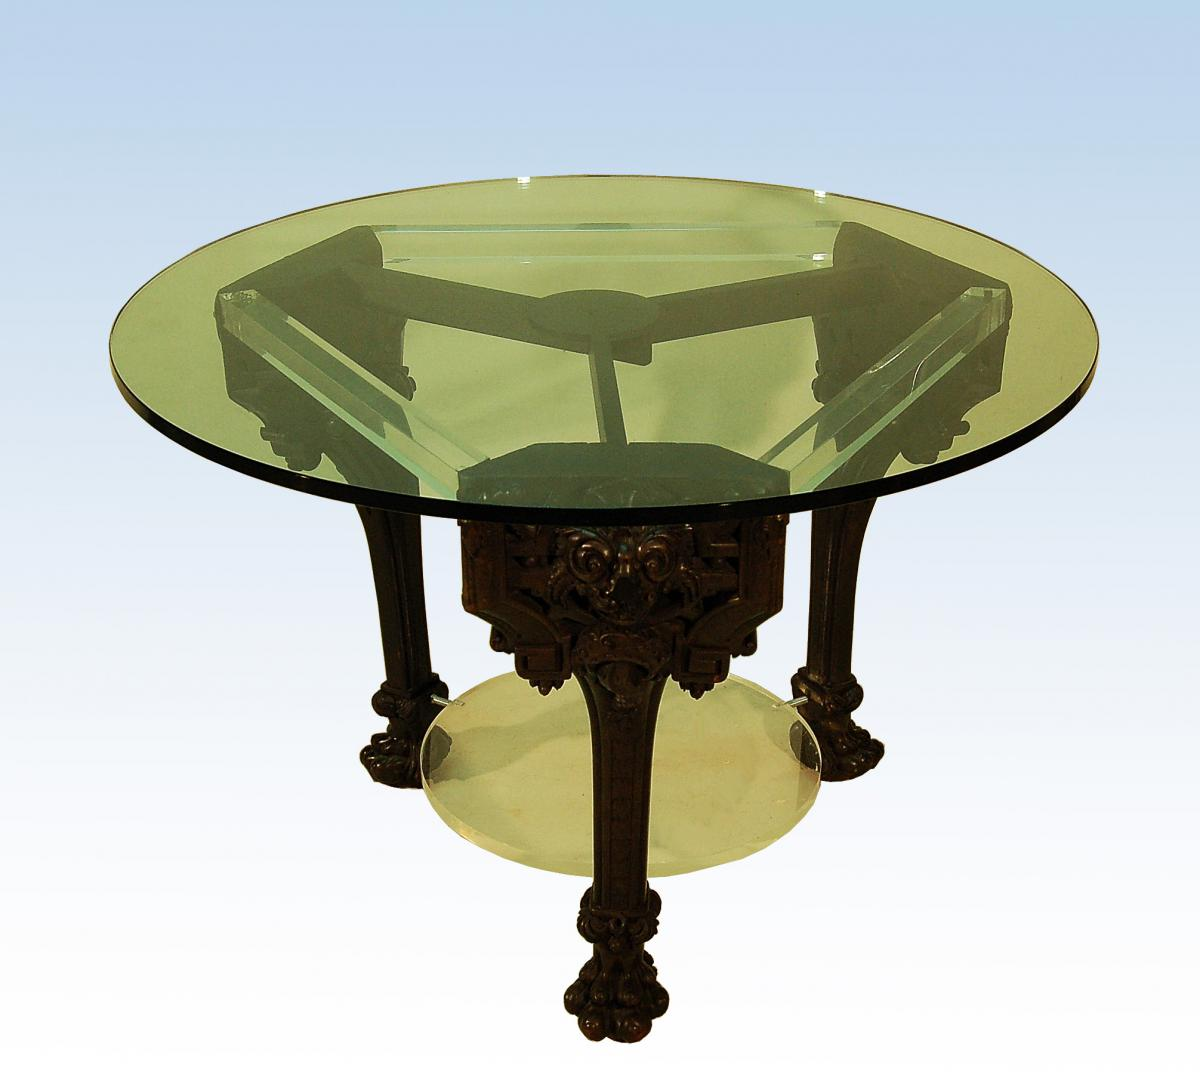 Composed Of Veterans Table Design Elements